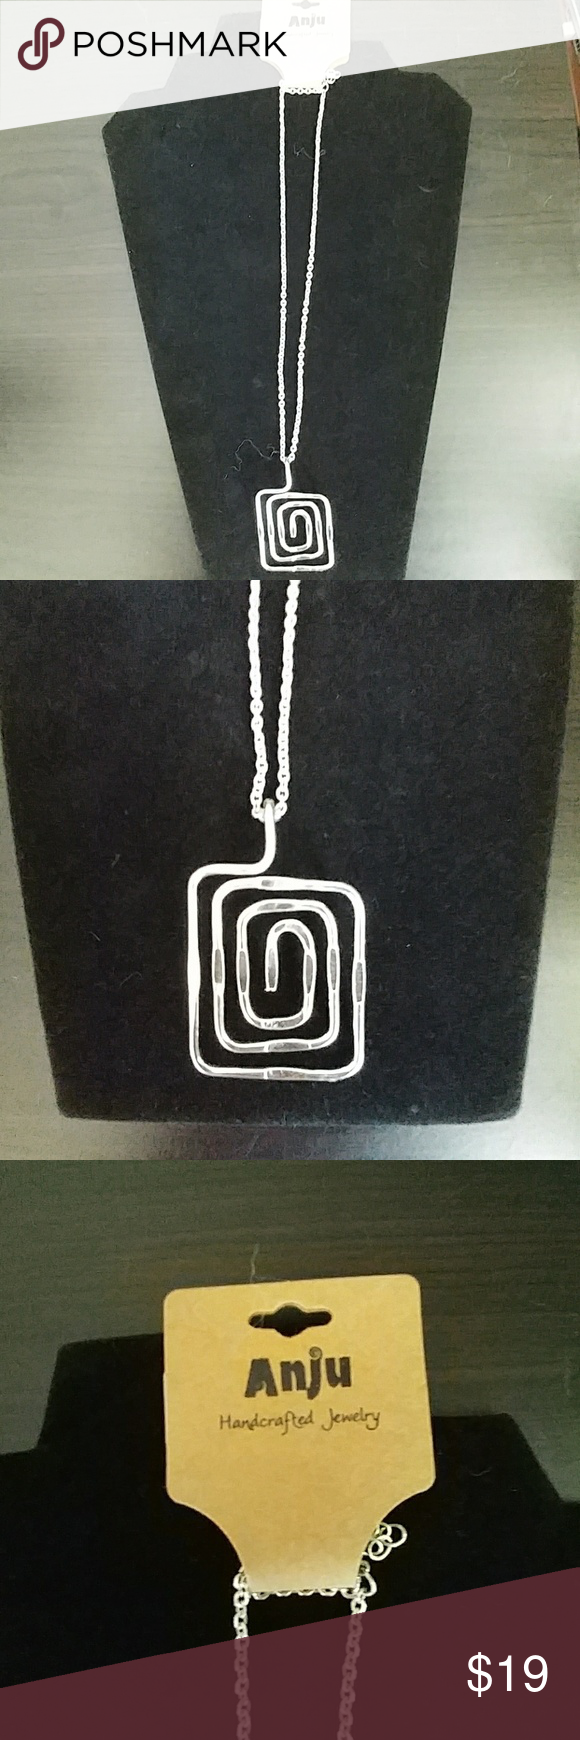 NWT Anju Handcrafted Jewelry square pendant NEW WITH